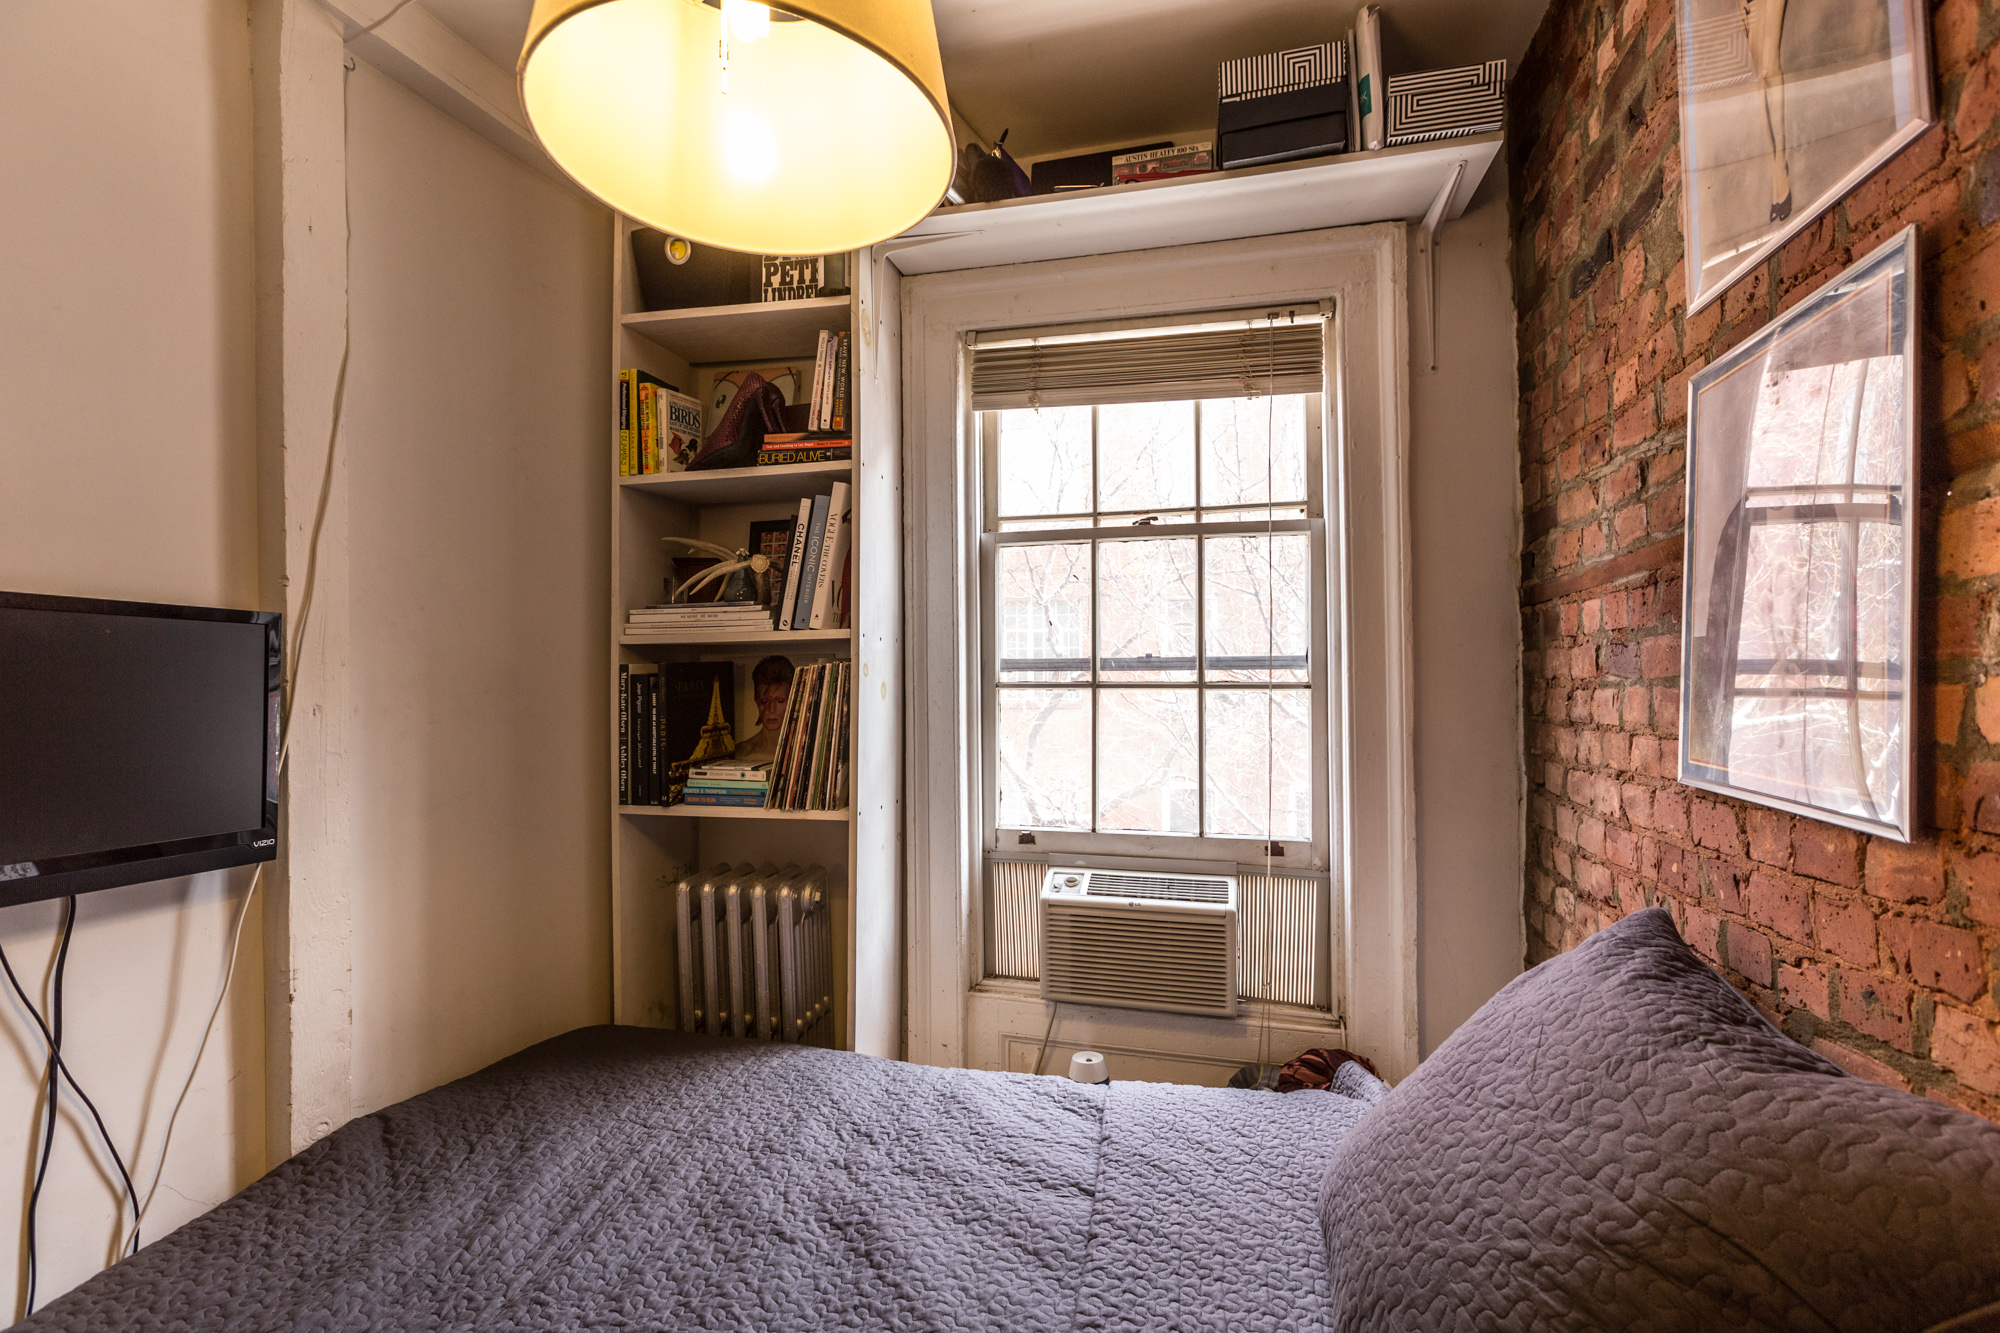 How one new yorker lives comfortably in 90 square feet for 100 square feet bedroom interior